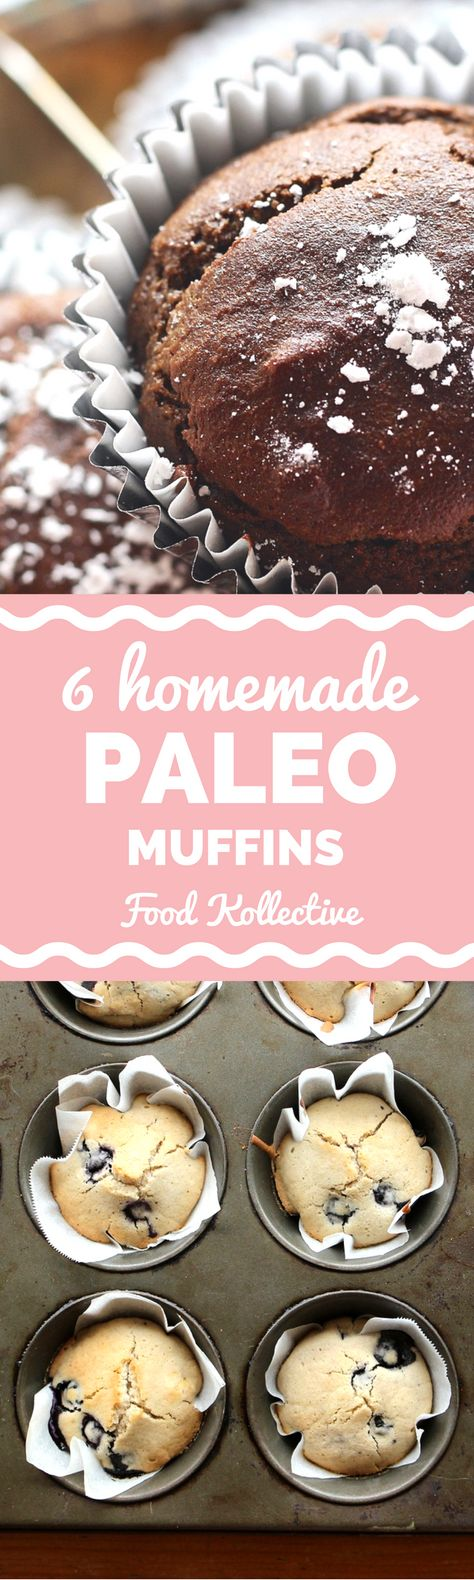 I was hunting for paleo muffins and these look incredible! There are recipes for paleo chocolate muffins, paleo banana muffins, paleo blueberry muffins, and more. Pinning this for later! Collected on FoodKollective.com